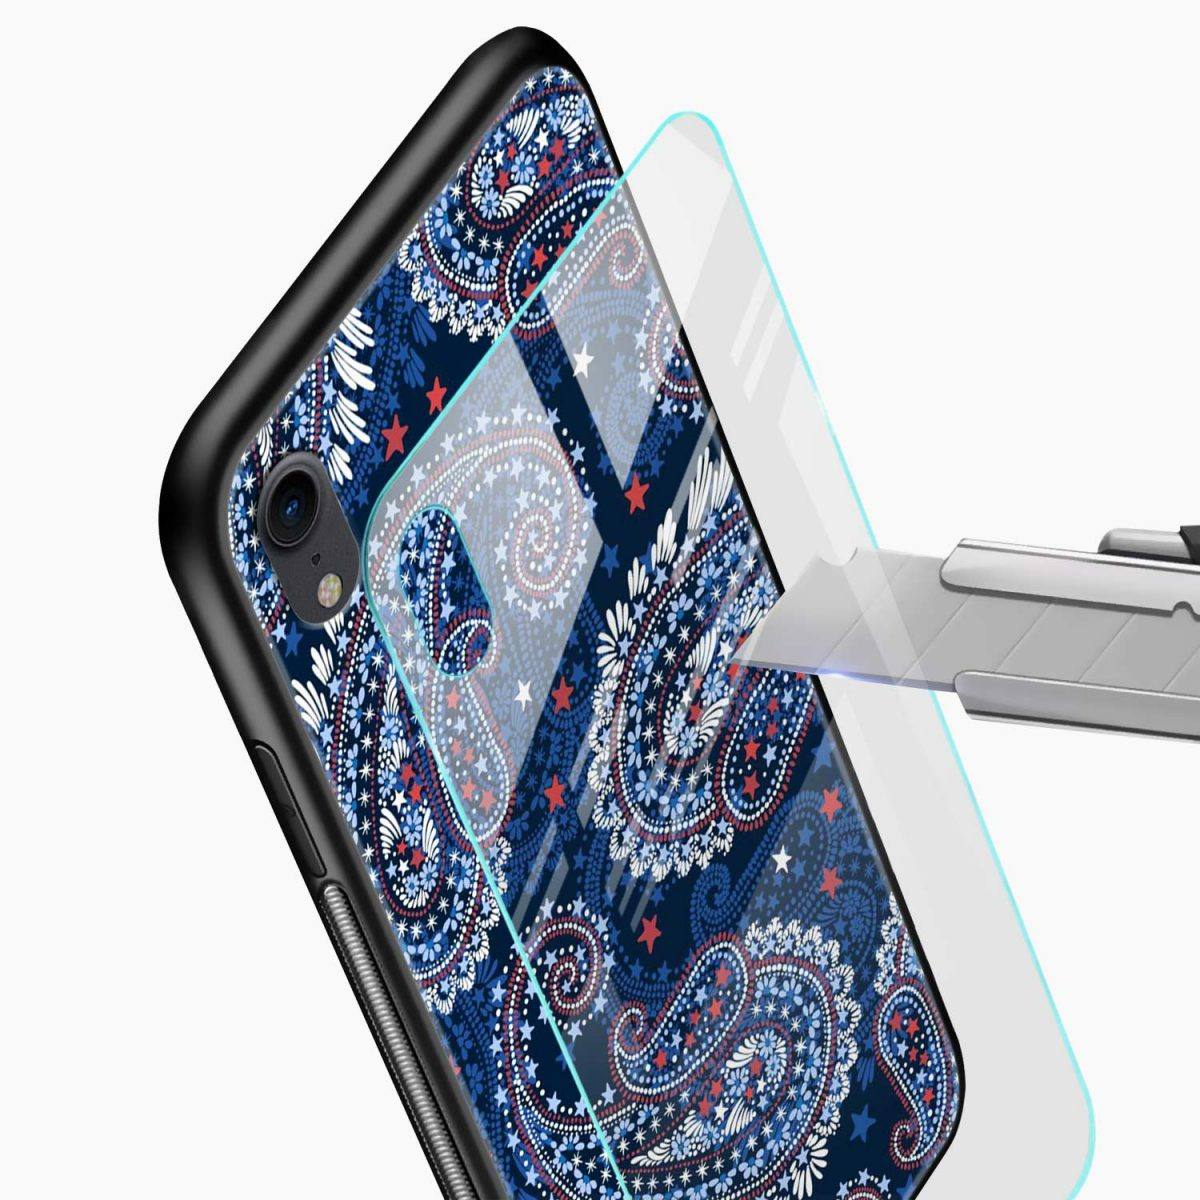 blue colored classical pattern apple iphone xr back cover glass view